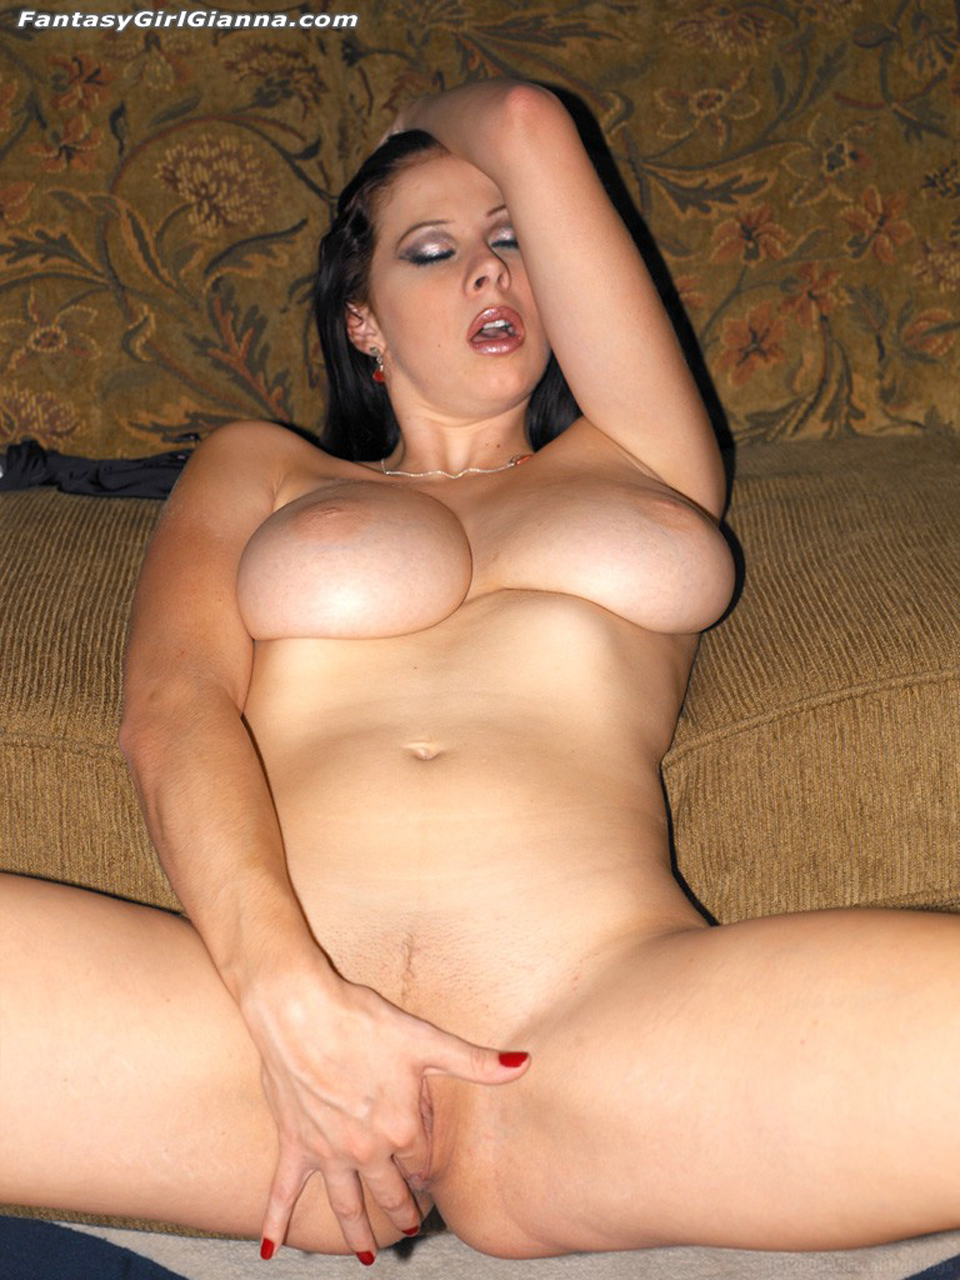 gianna michaels hardcore